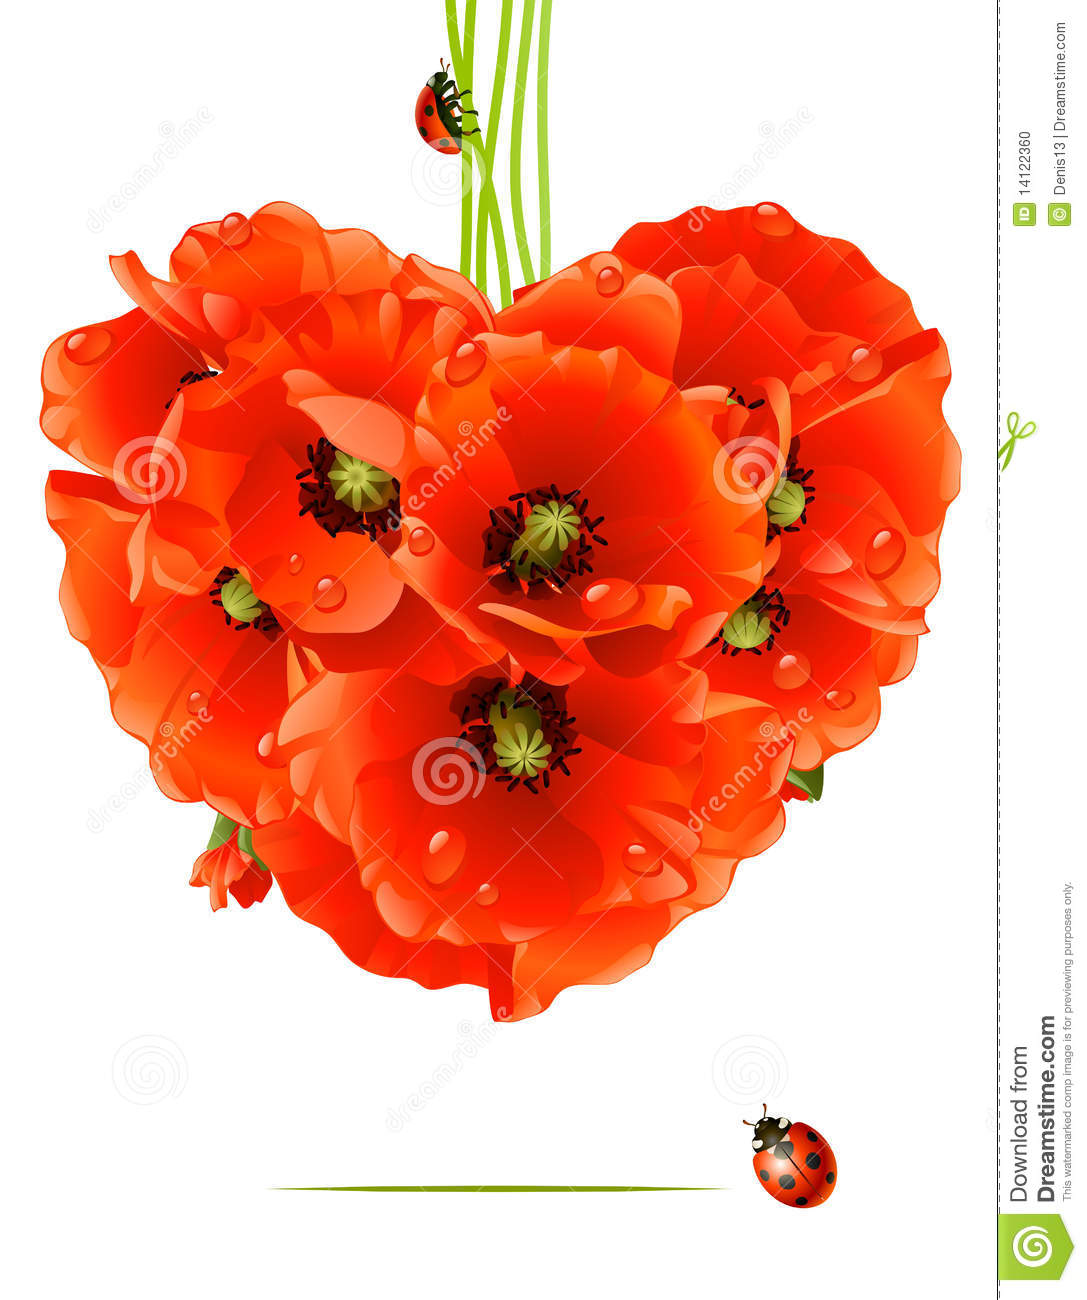 Floral Love Card Poppy Heart Stock Vector Illustration Of Gift